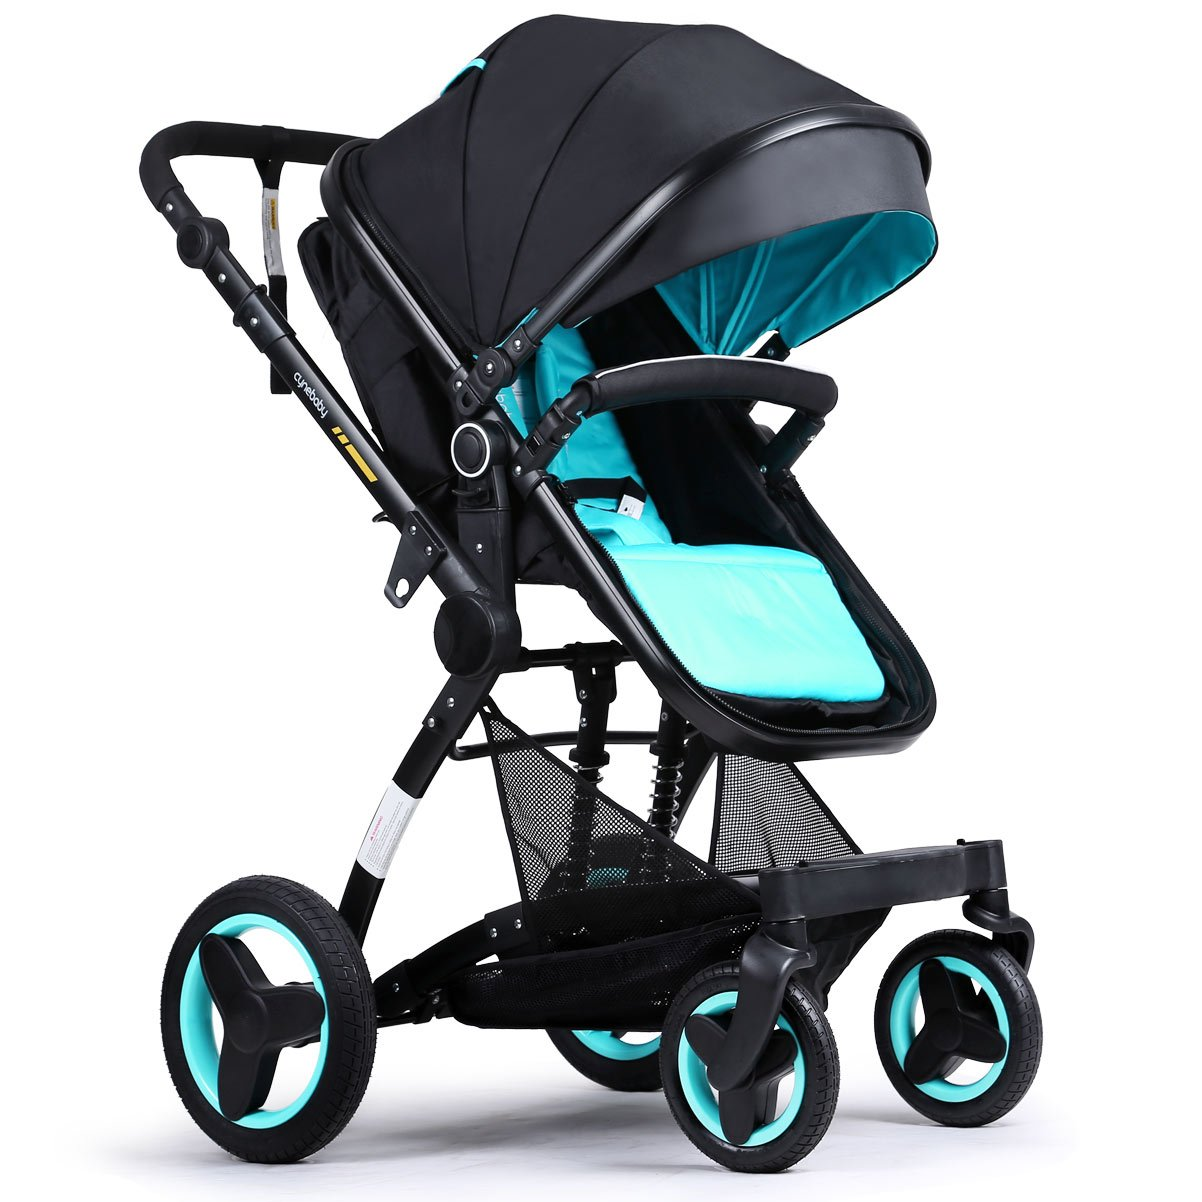 Baby stroller travel system folding pram pushchair infant toddler carriage high landscape (blue) by Cynebaby (Image #2)